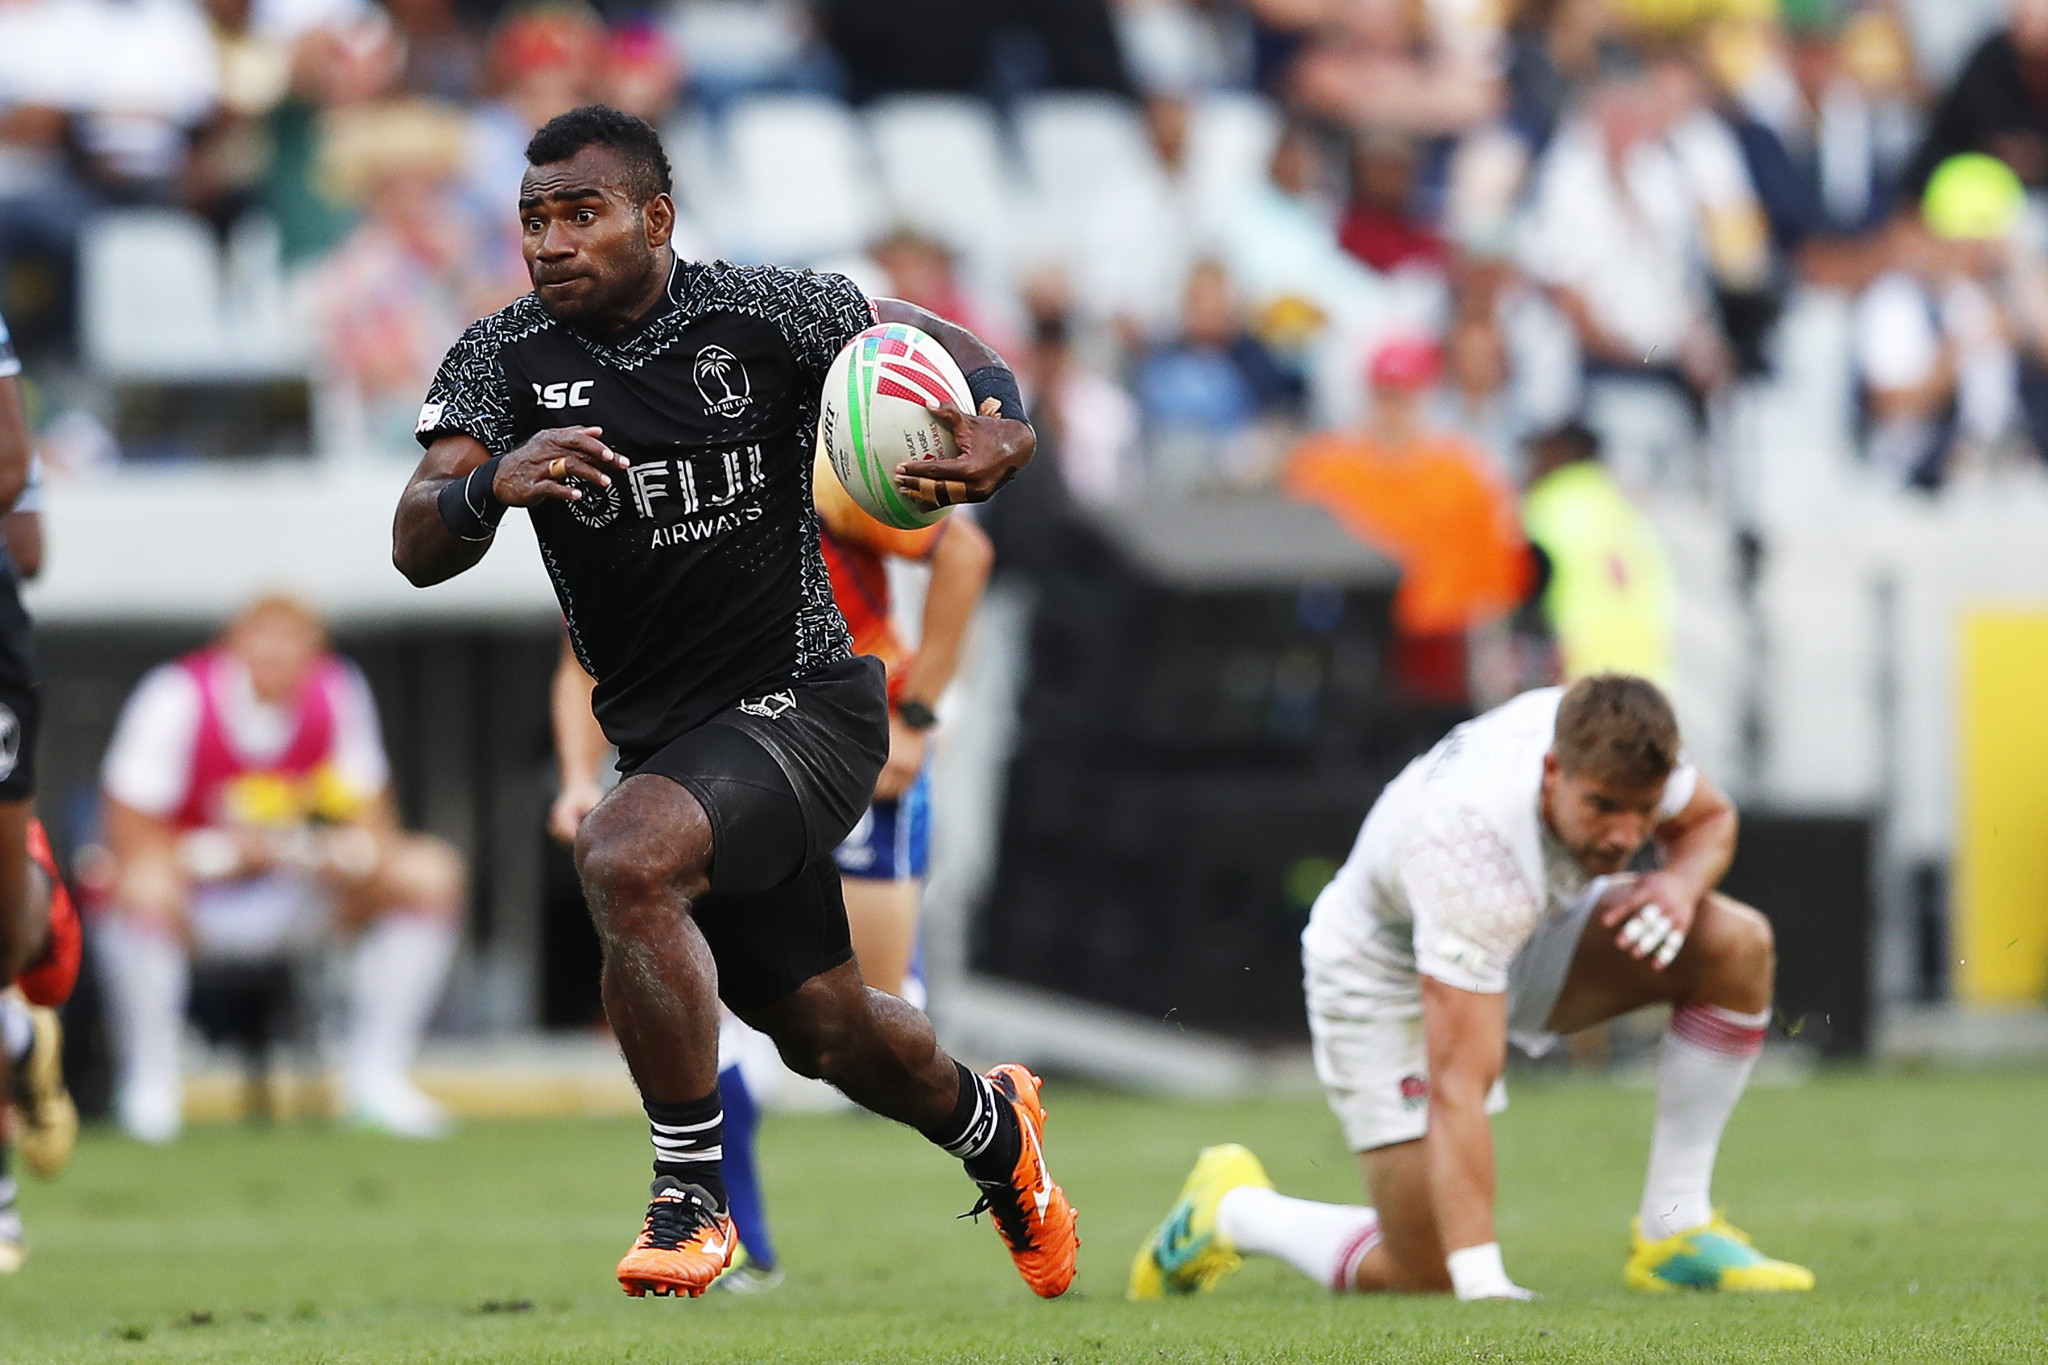 Fiji, Australia and United States unbeaten after first day of World Rugby Sevens Series in Cape Town